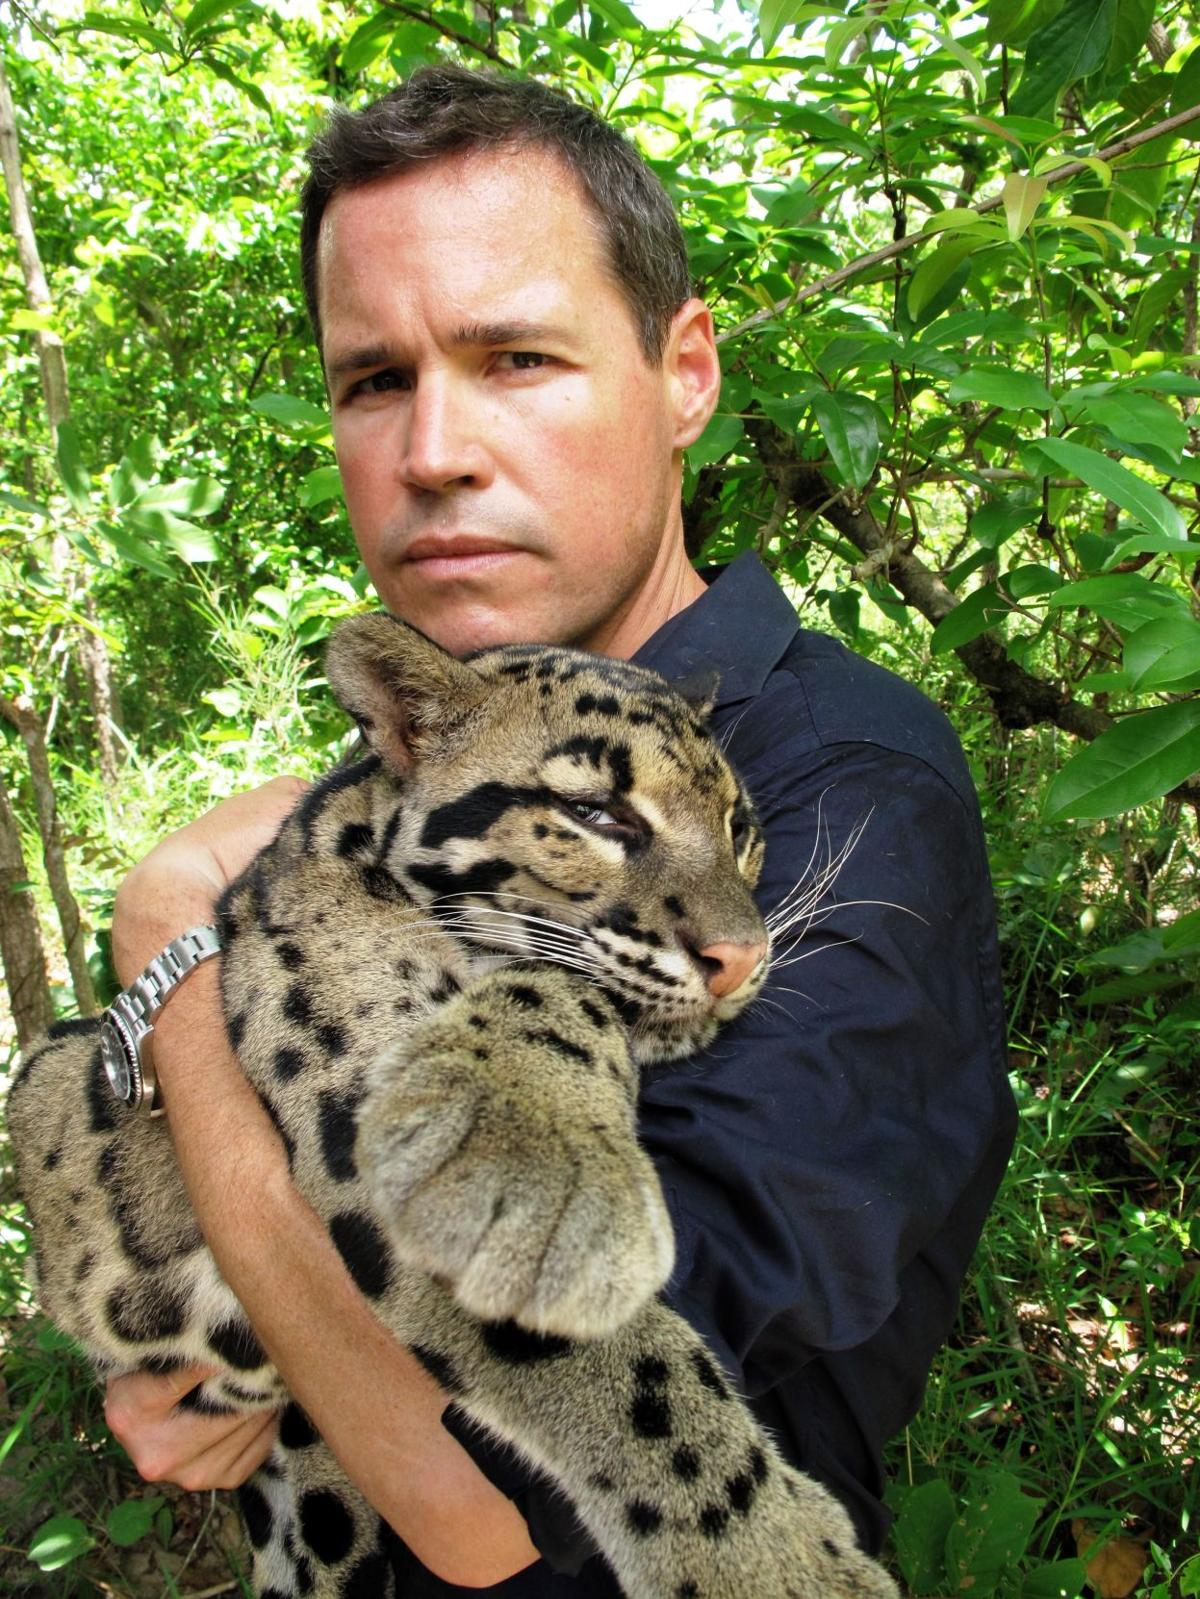 Jeff Corwin with leopard